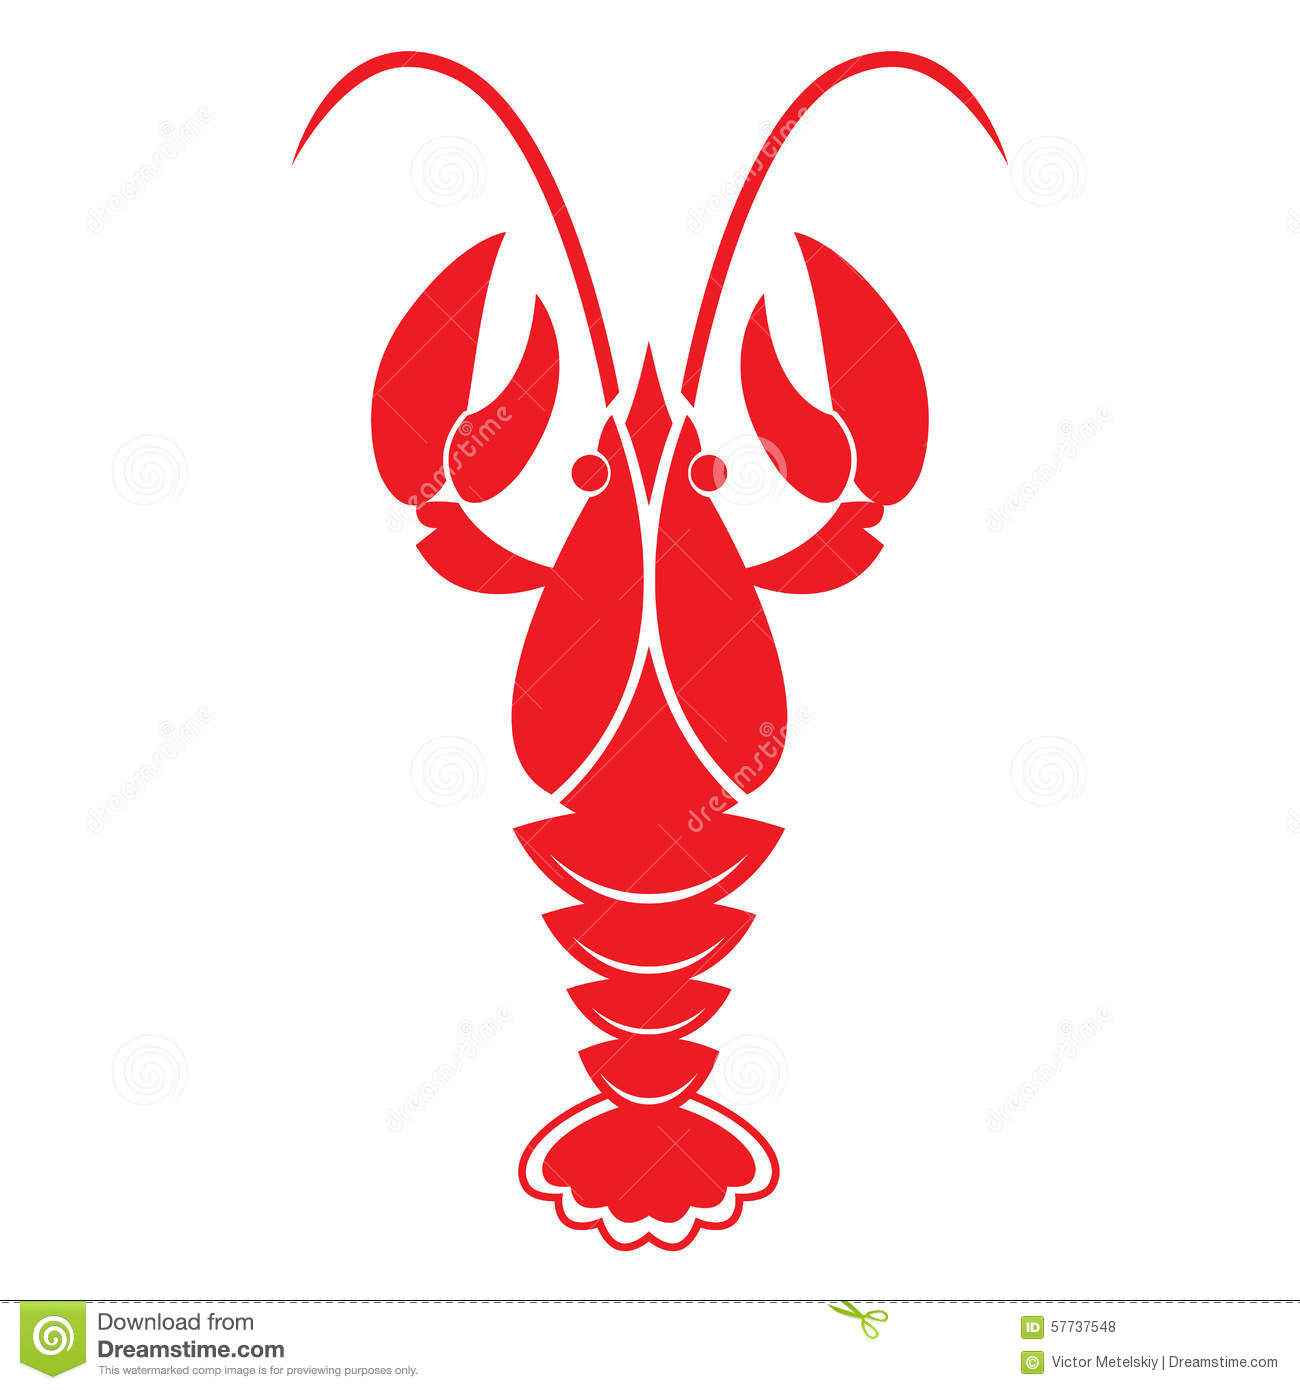 Red Crawfish On White Background. Vector Icon Or Sign. Stock Vector - Image: 57737548